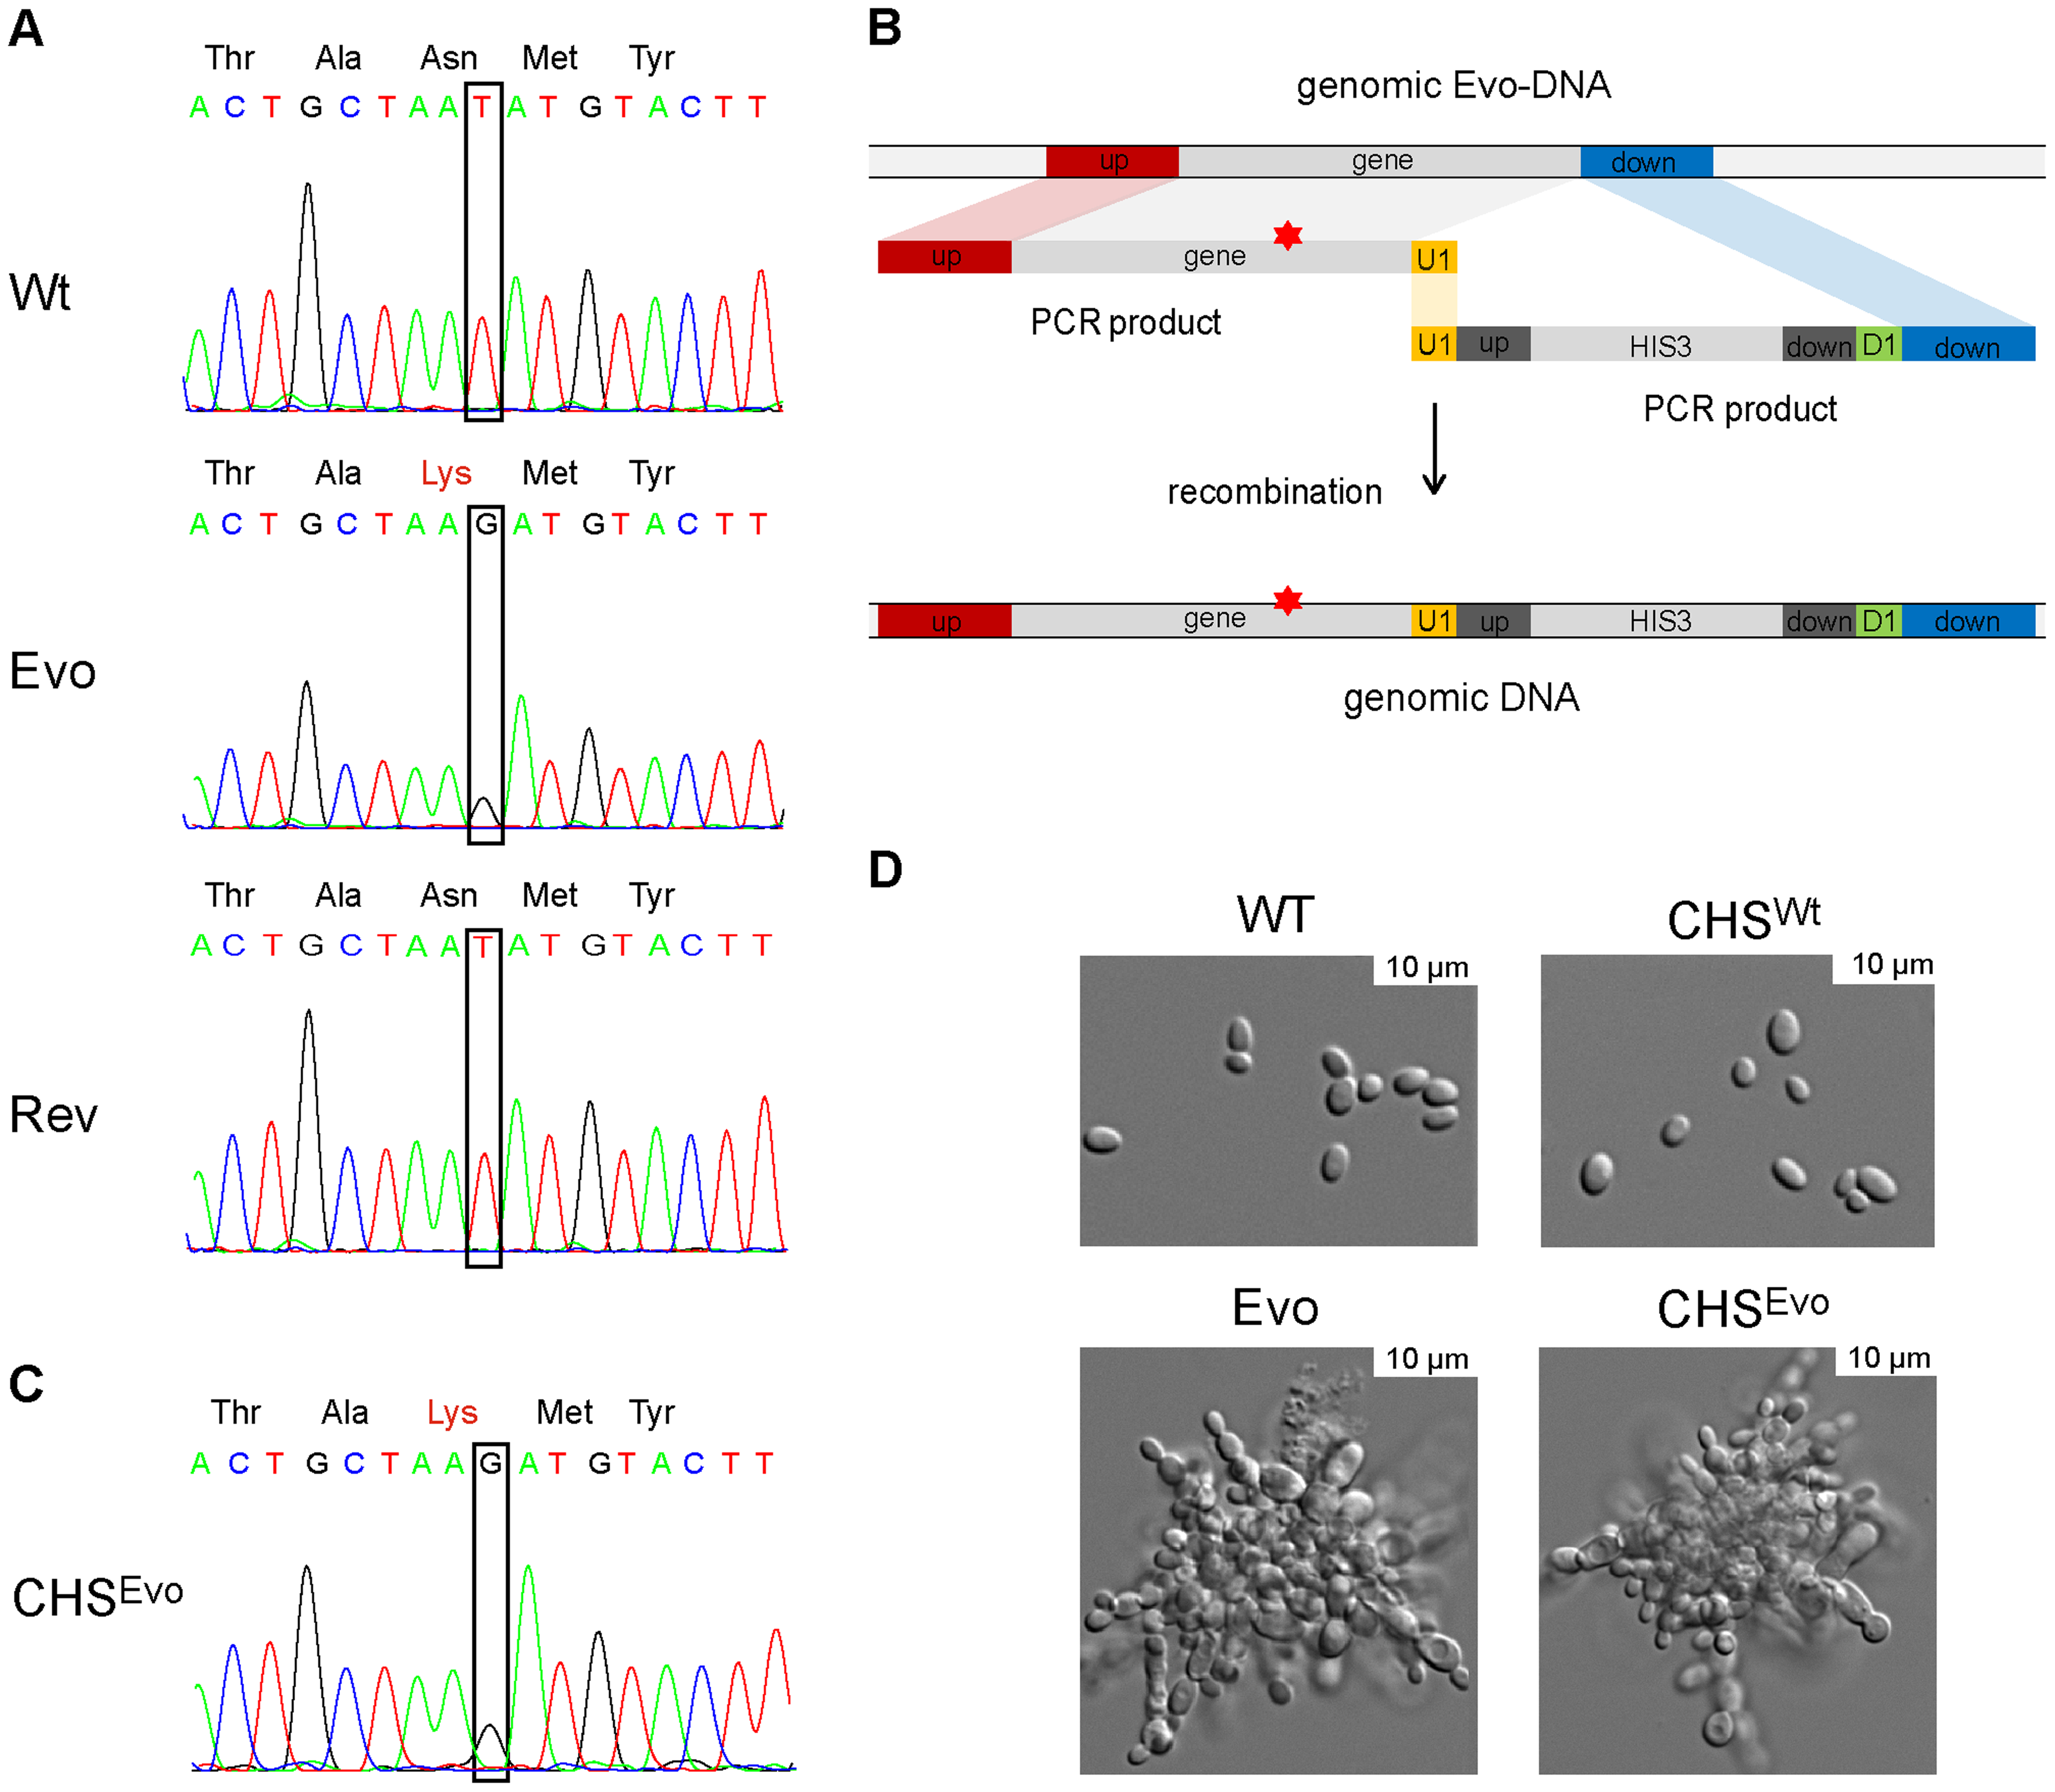 A single nucleotide exchange is sufficient to produce the evolved phenotype.